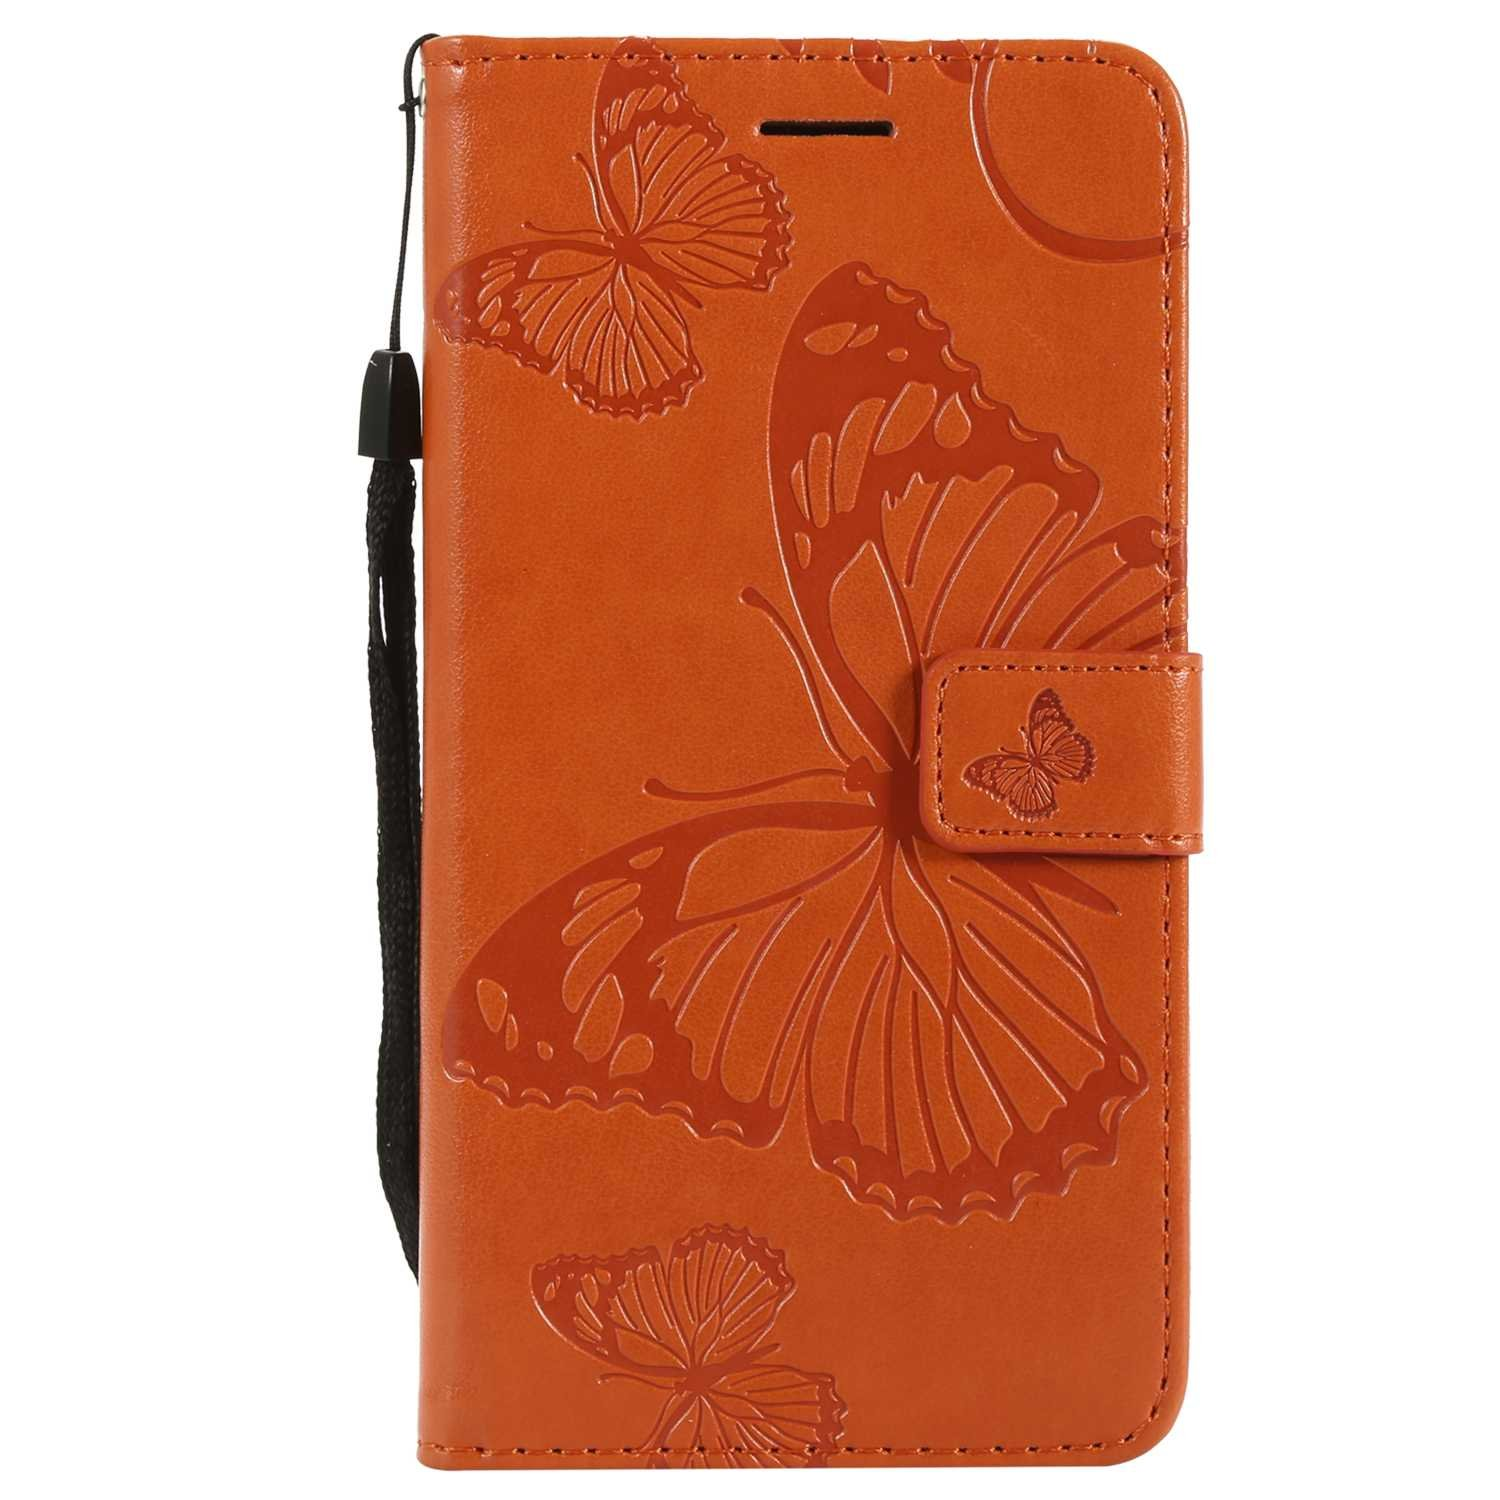 CUSKING Case for Samsung Galaxy J7 2016, Leather Flip Cover Magnetic Wallet Case with Butterfly Embossed Design, Case with Card Holders and Kickstand - Orange